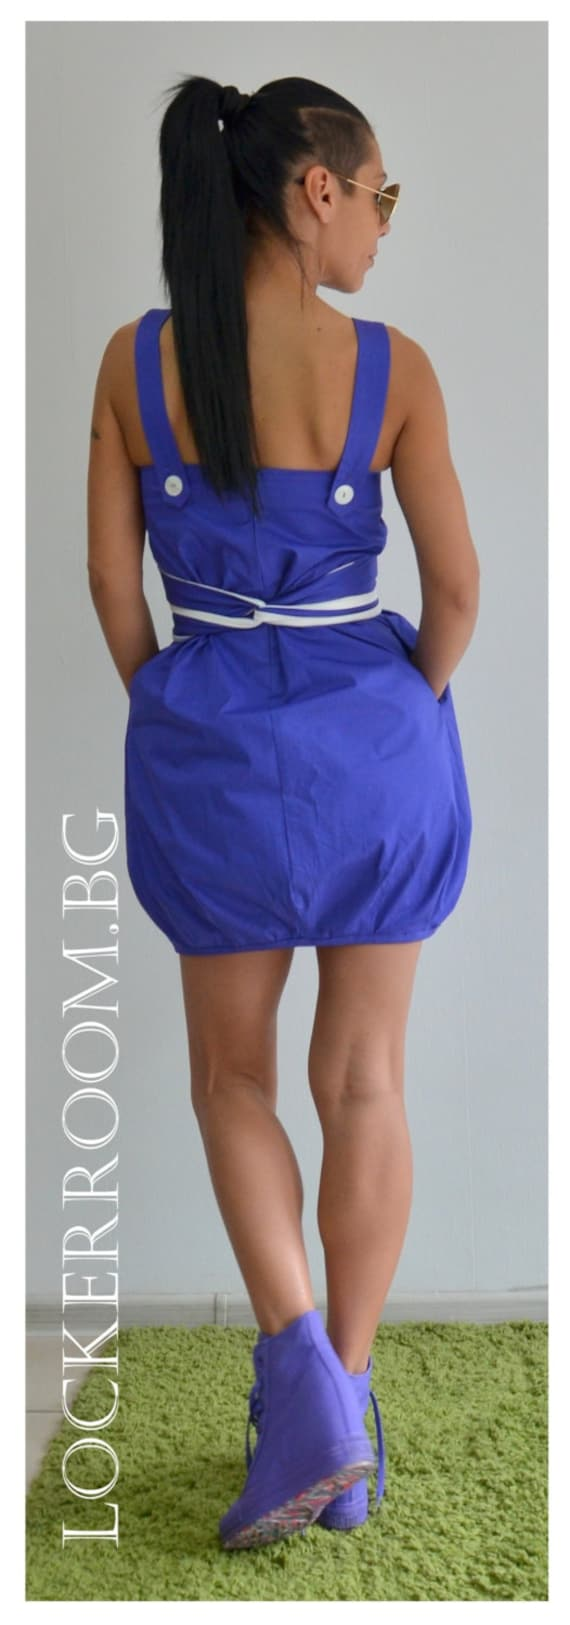 Dress Party Summer Blue Cotton dress Mini Dress Dress Dress Dress Sleeveless Dress Bridesmaid nqx5nAY4Sw